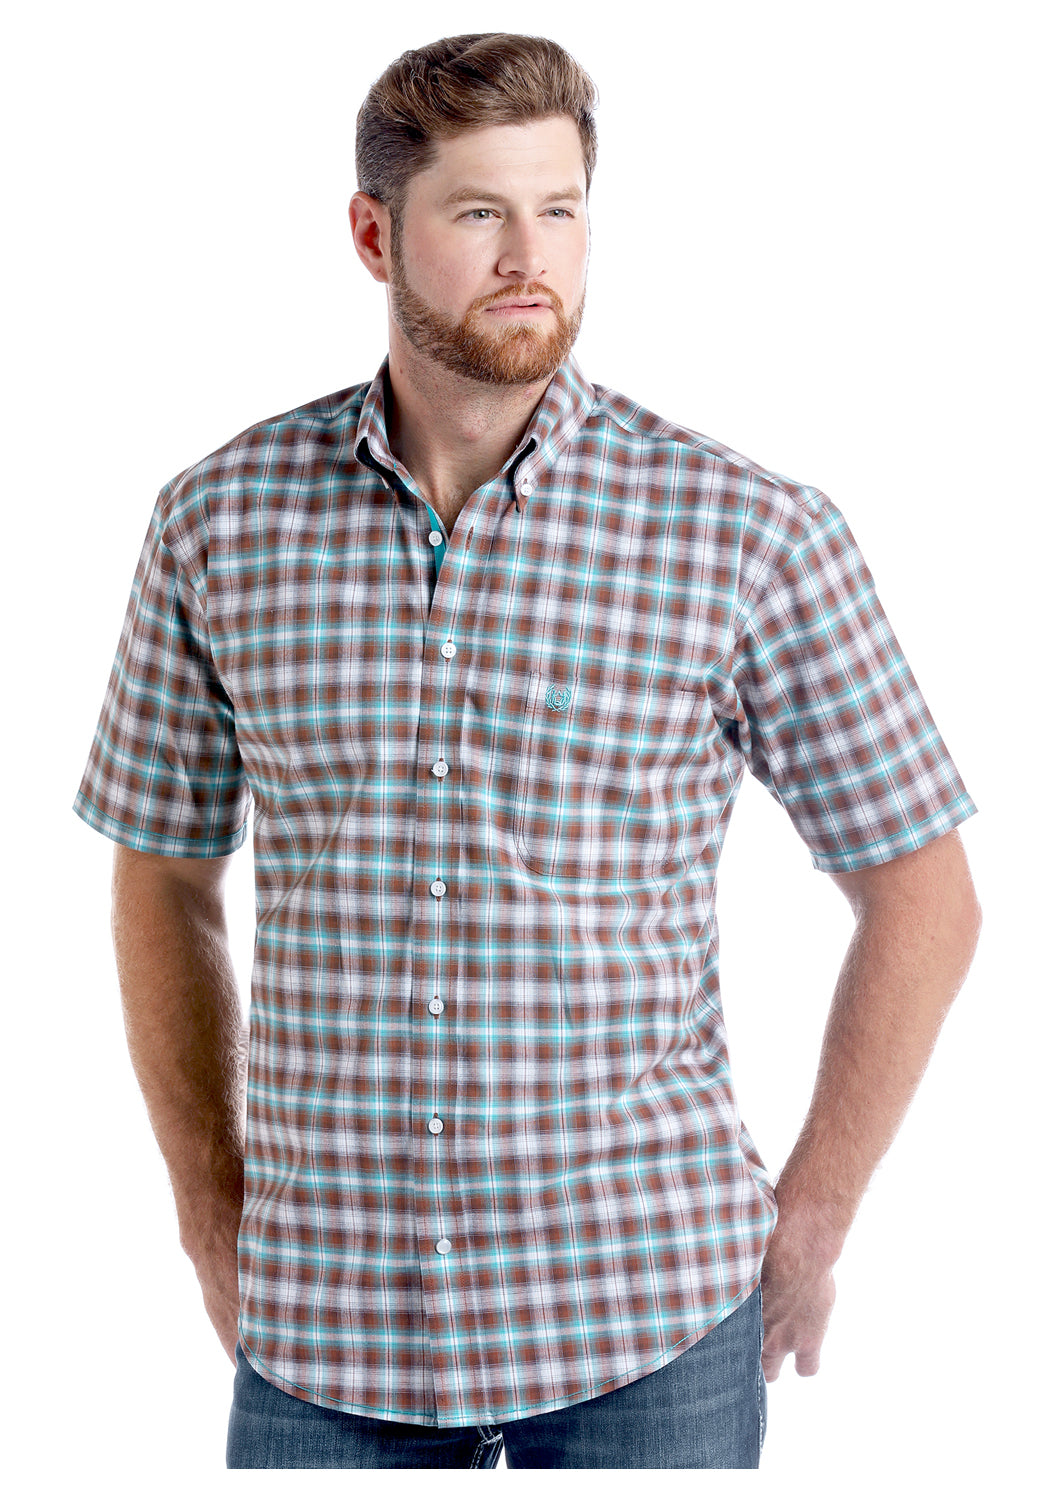 Panhandle Short Sleeve Plaid Men's Button Down